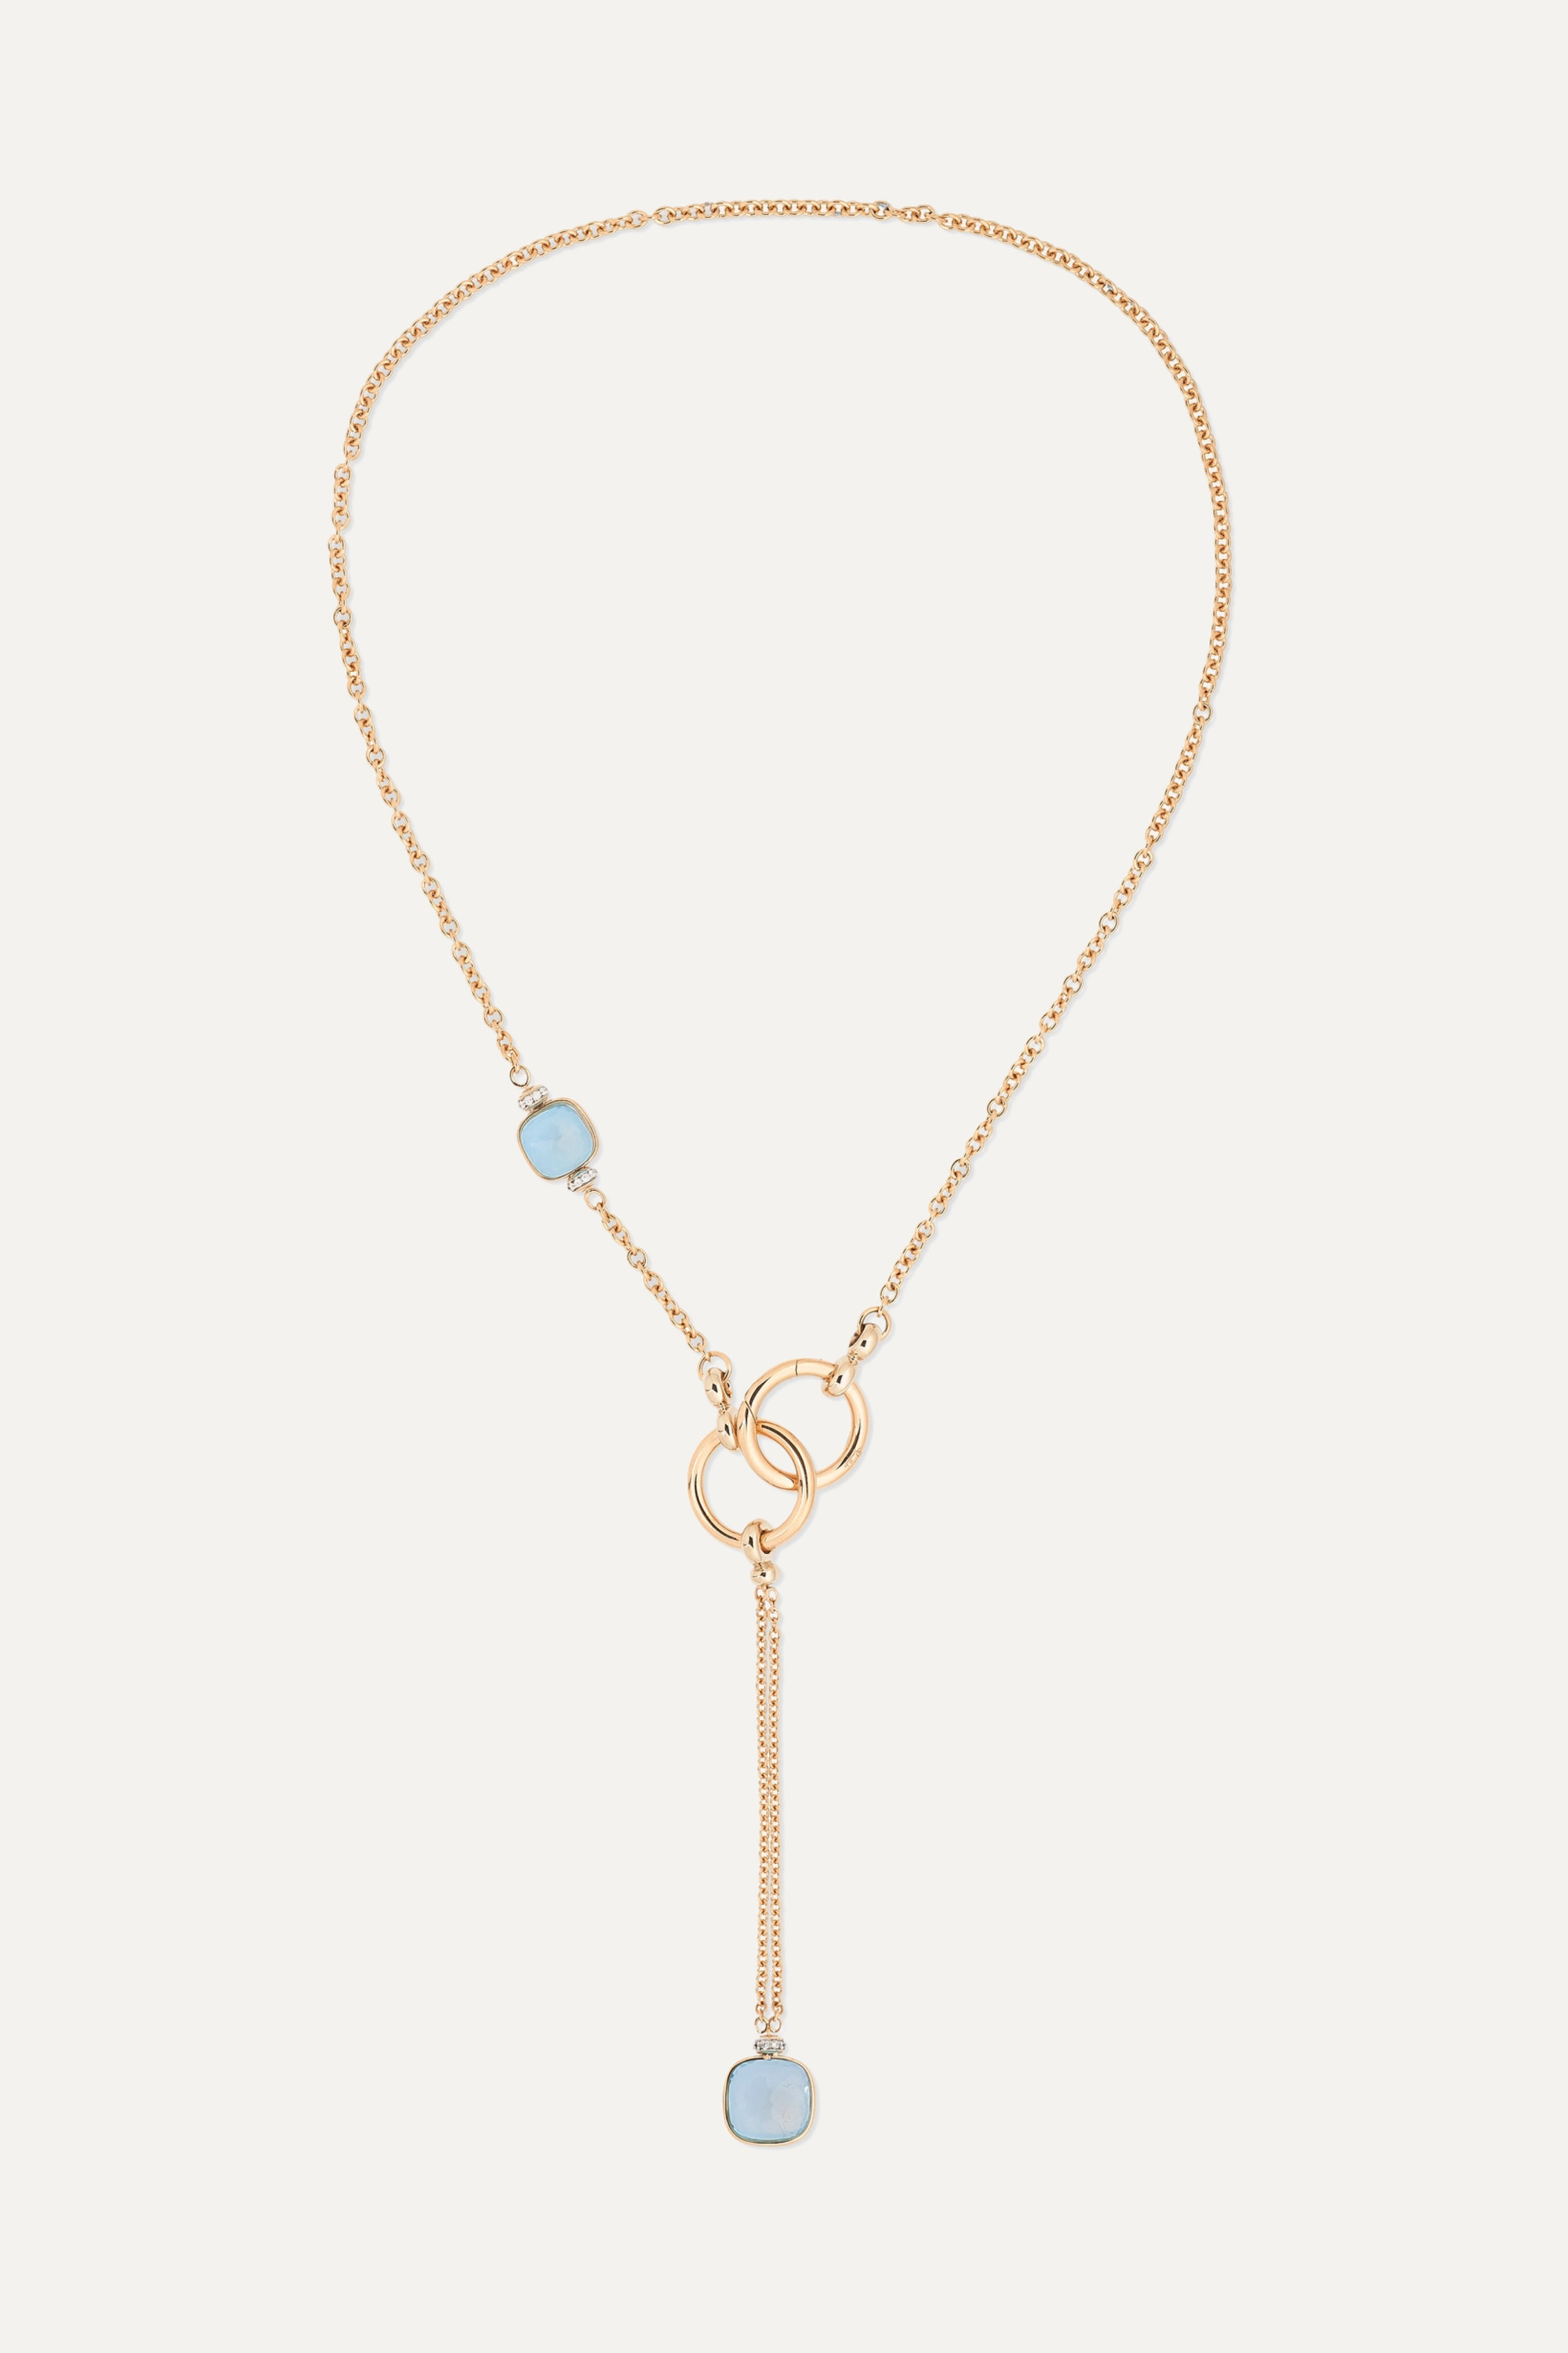 POMELLATO Nudo 18-karat white and rose gold, topaz and diamond necklace